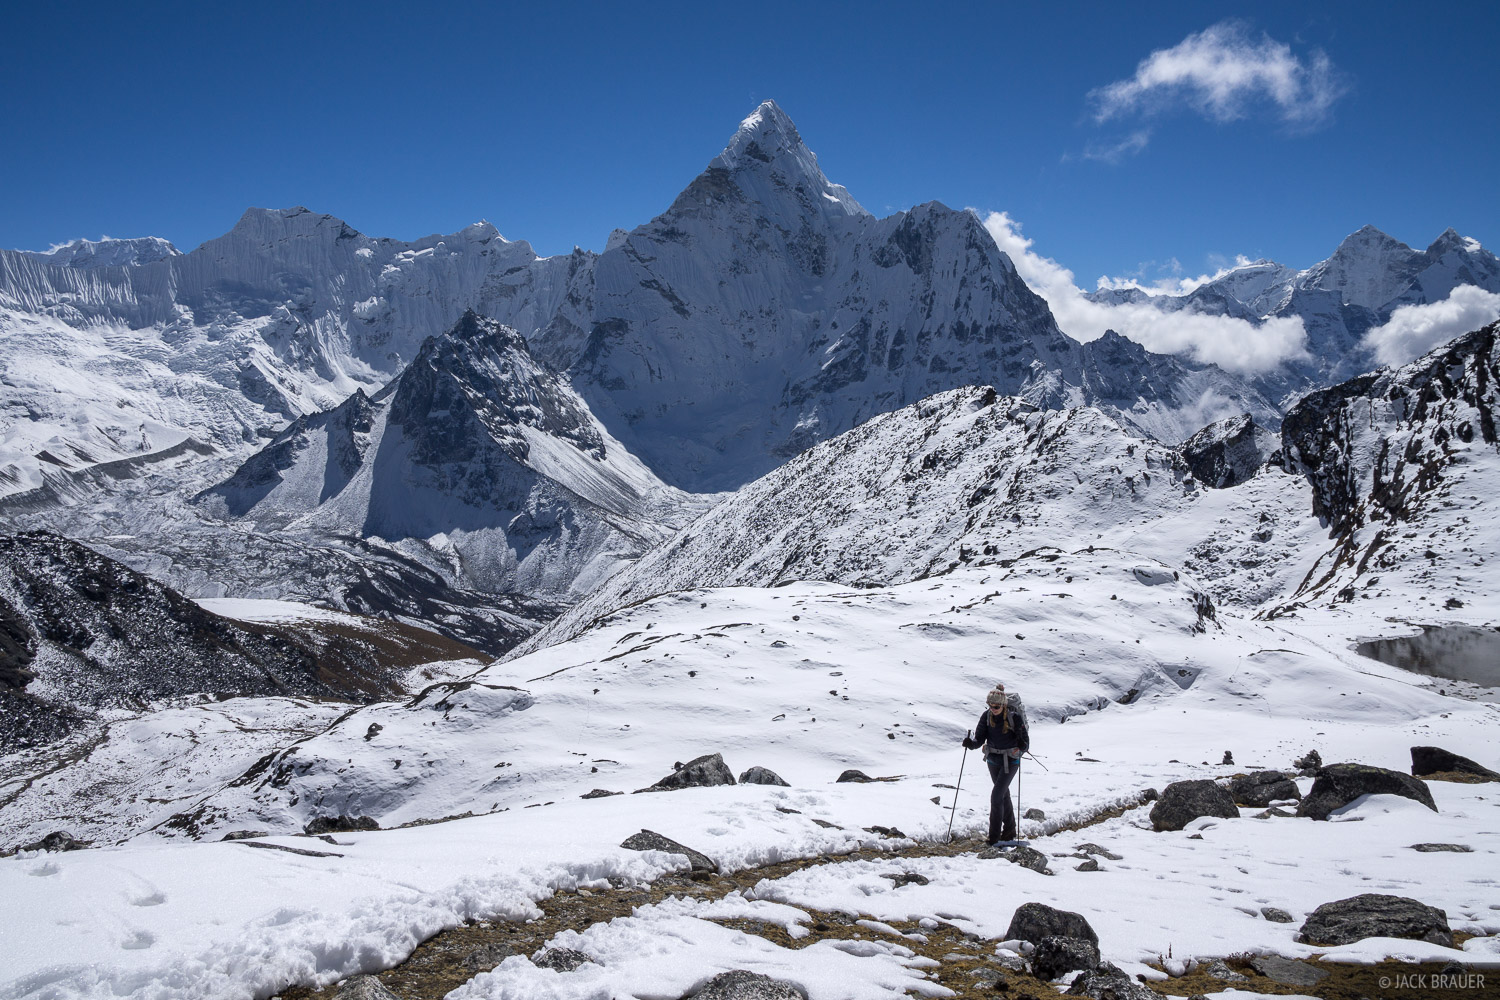 Hiking up the Kongma La, with Ama Dablam behind.